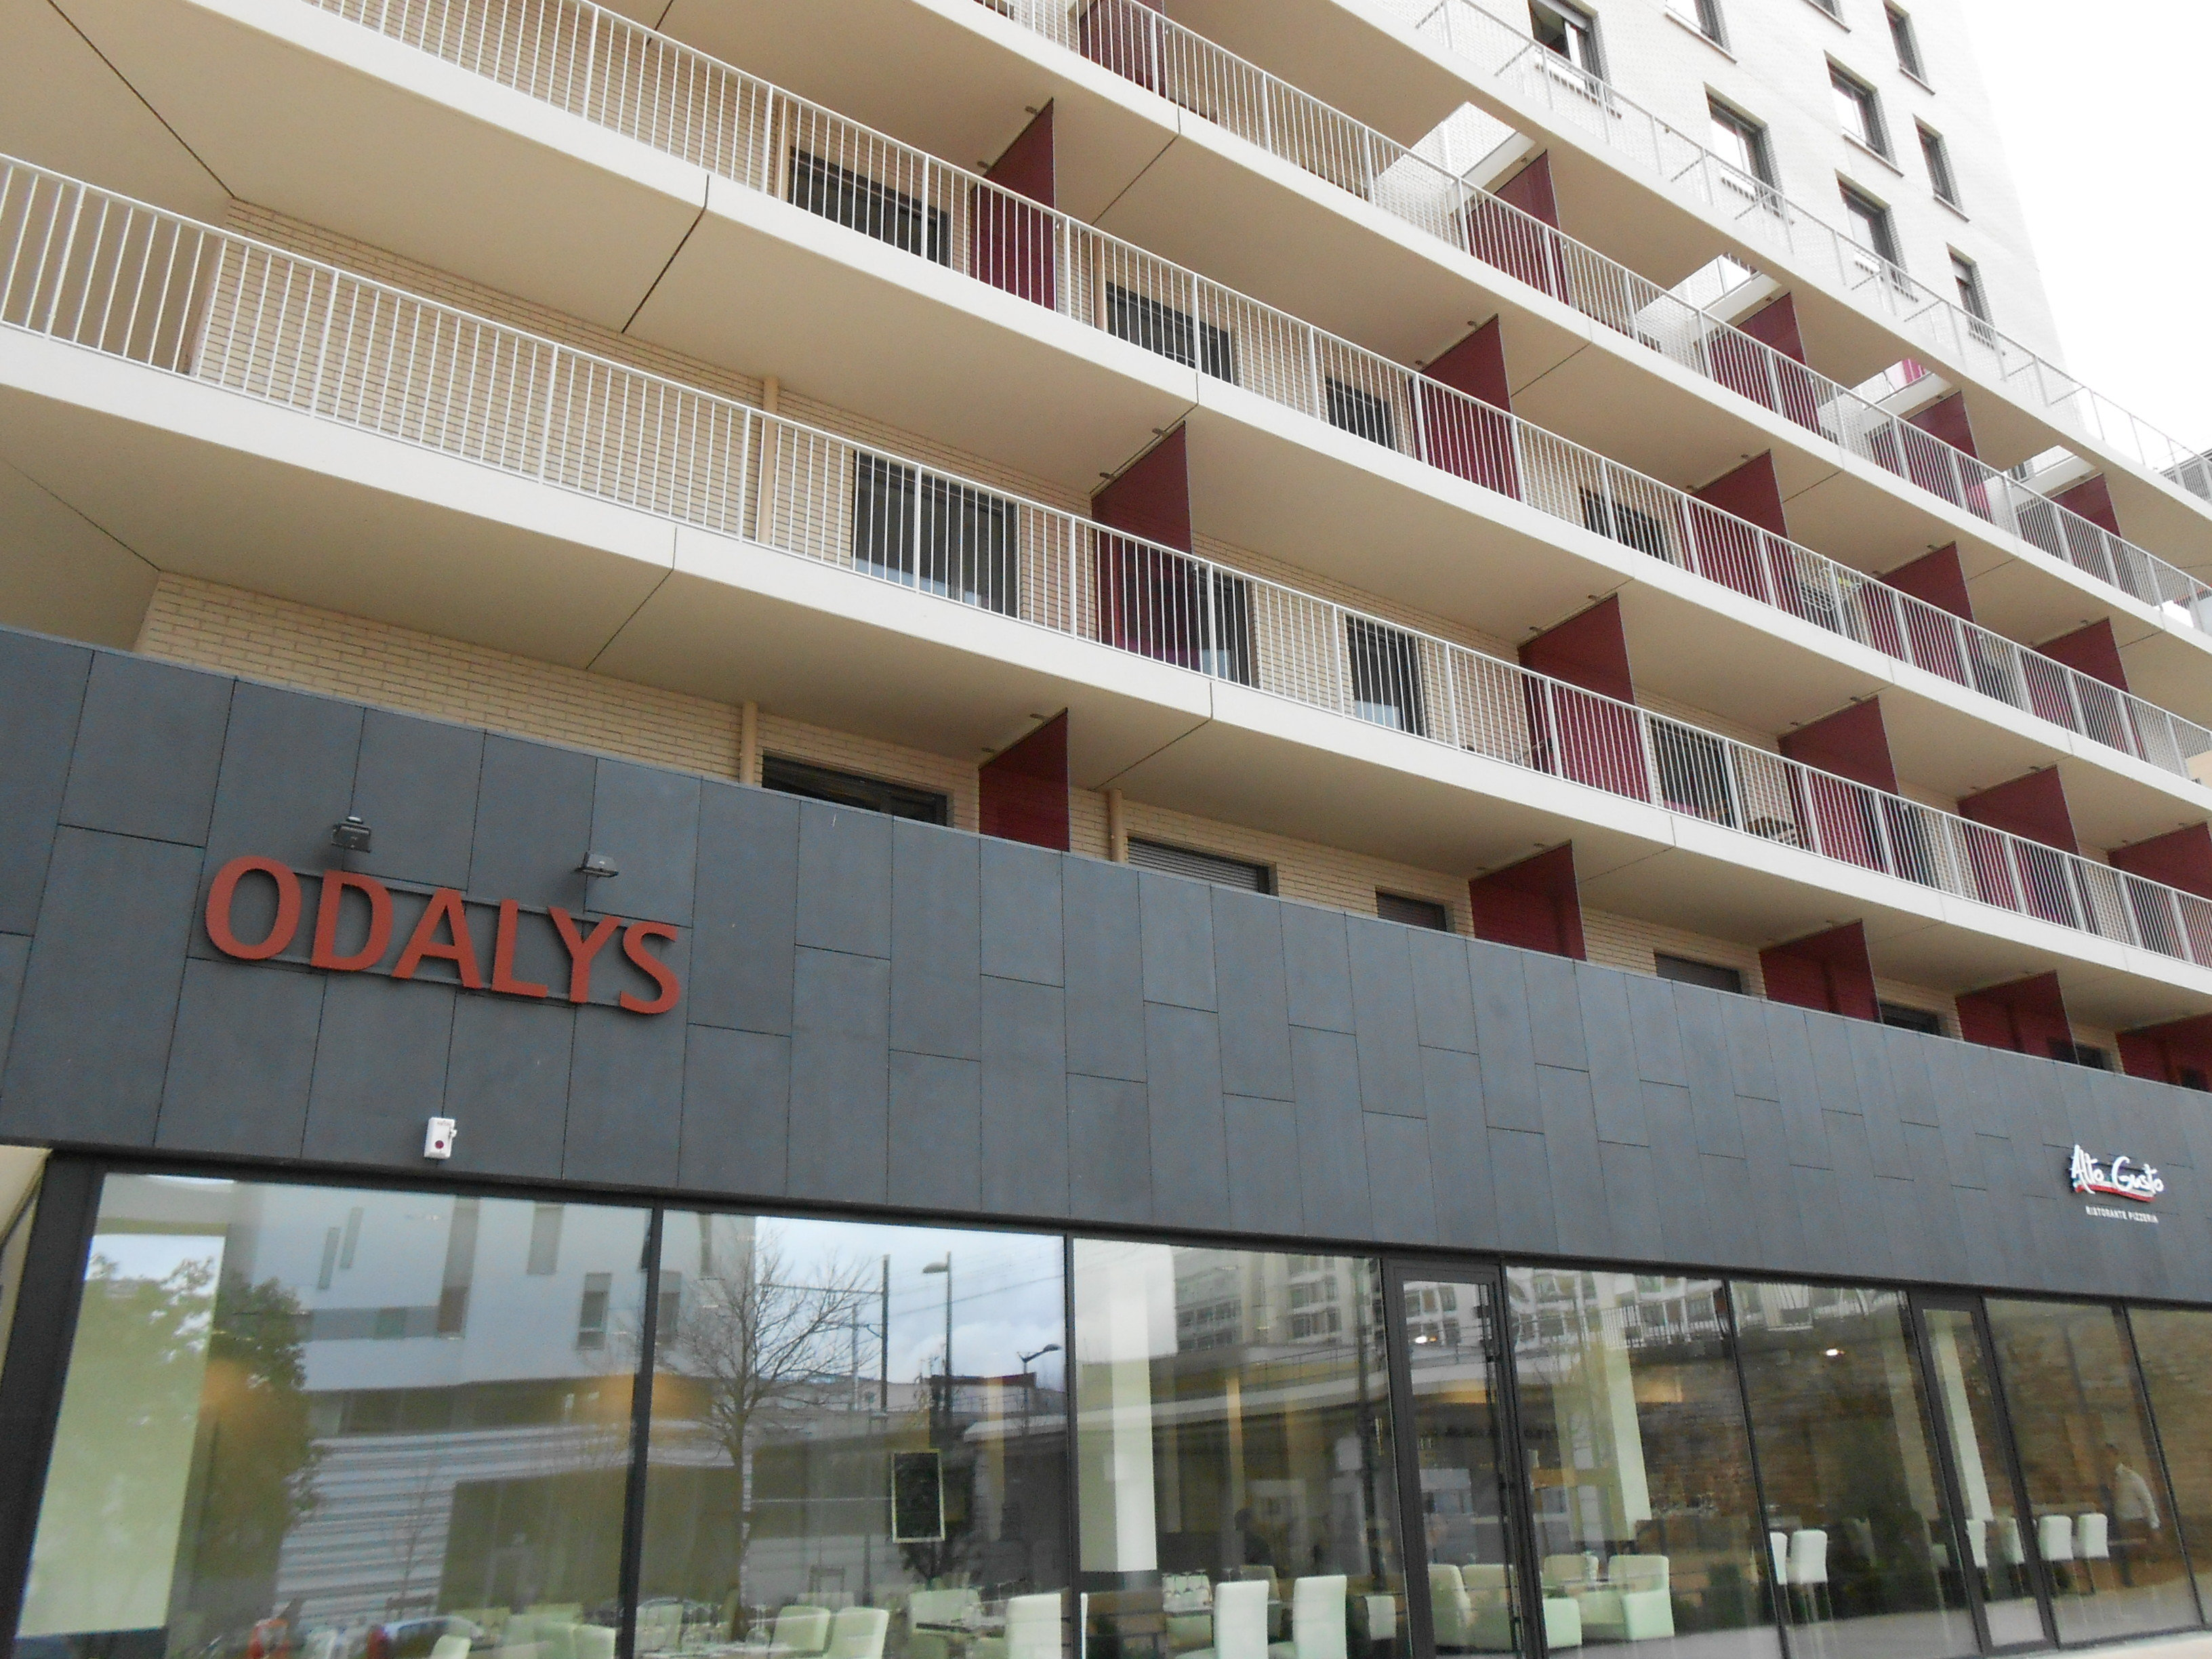 Appart hotel odalys lyon confluence r for Appart hotel odalys